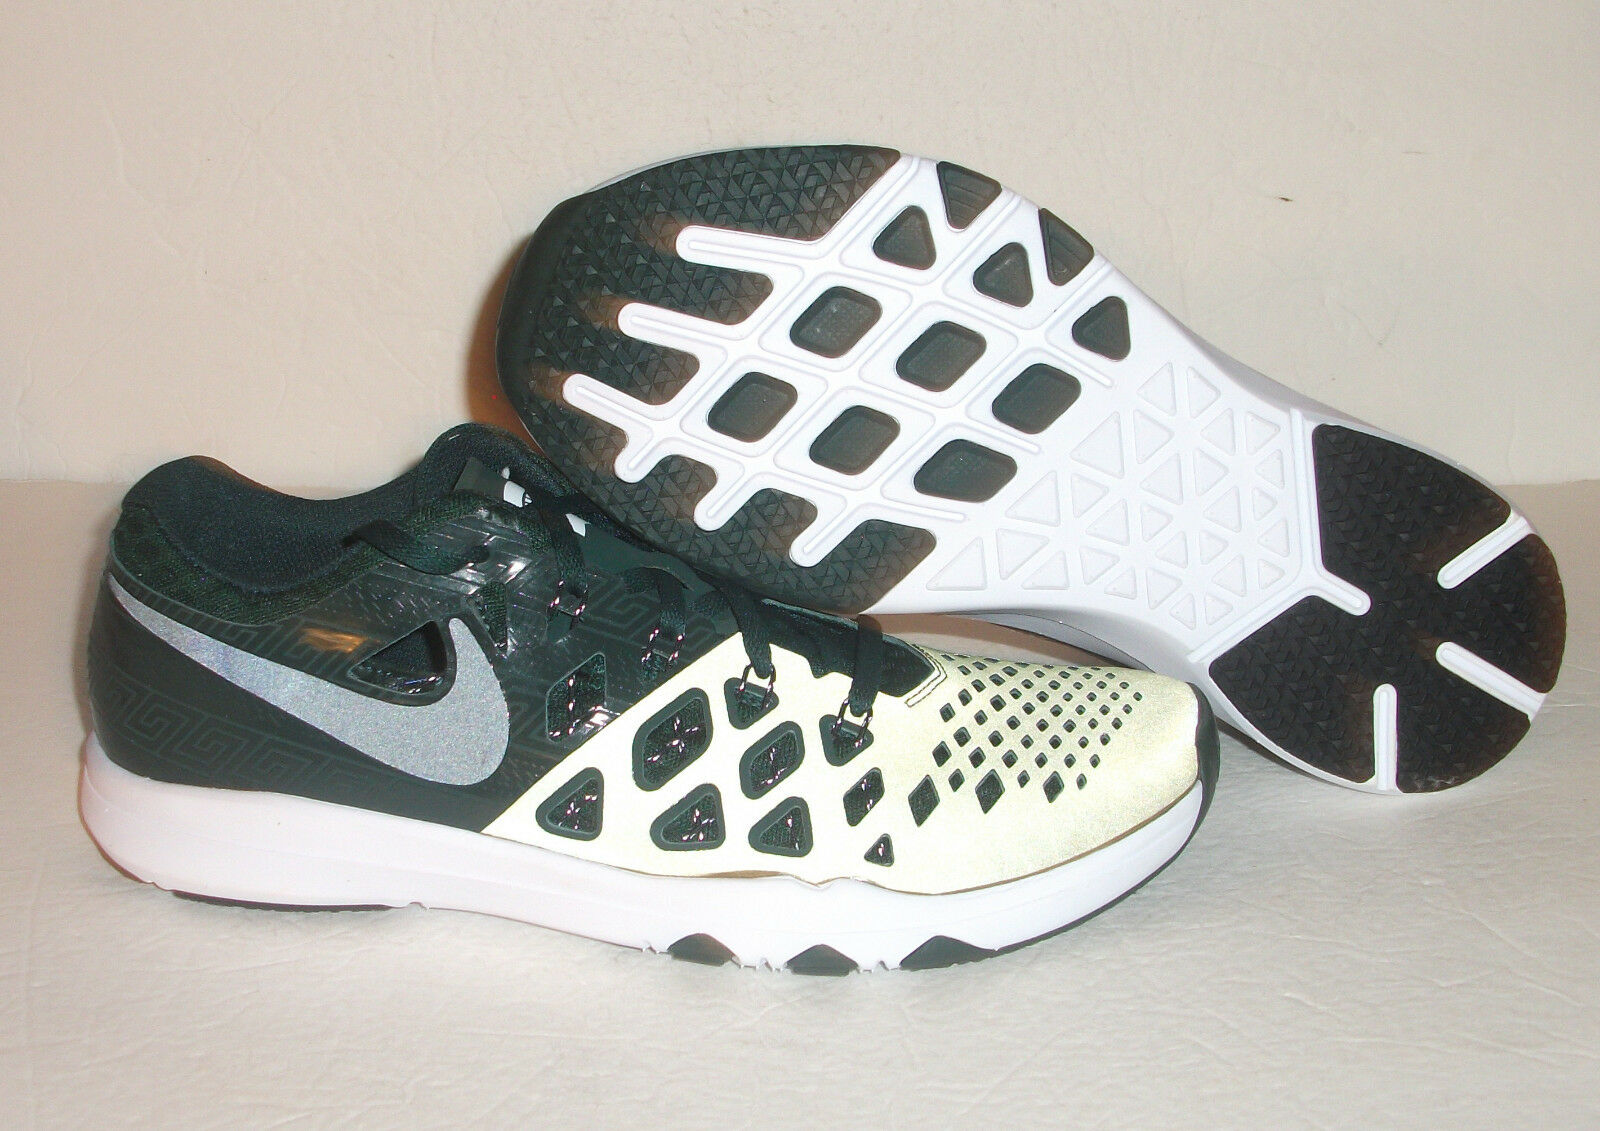 huge selection of 5ca5c 07431 New Nike Train Train Train Speed 4 AMP Michigan State, Men s Size 9.5, Green